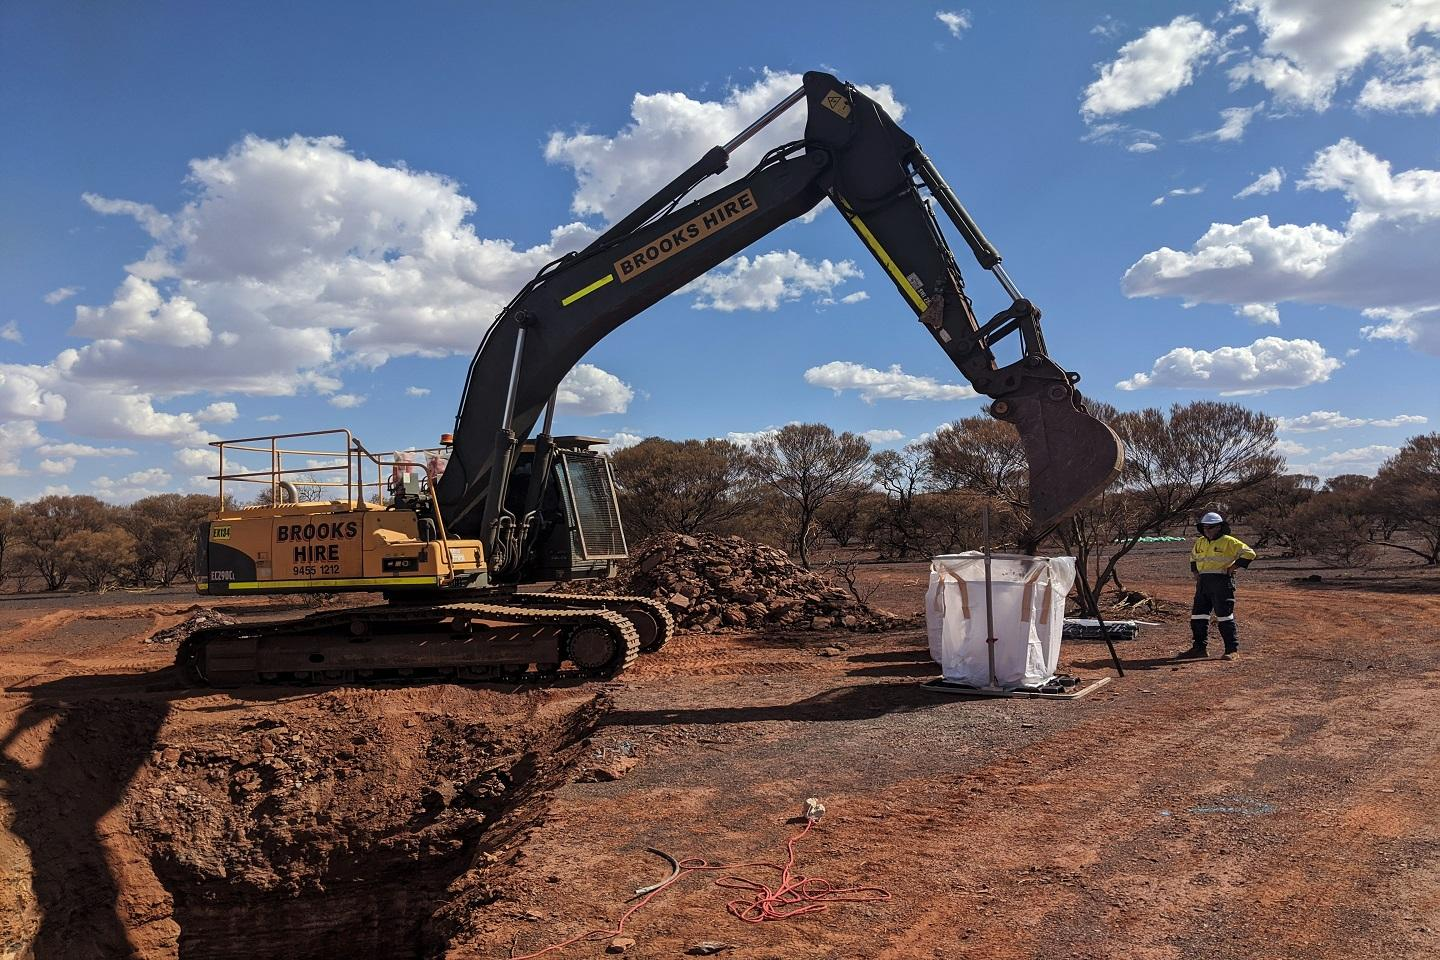 Element 25 leaps final hurdle for manganese mining lease